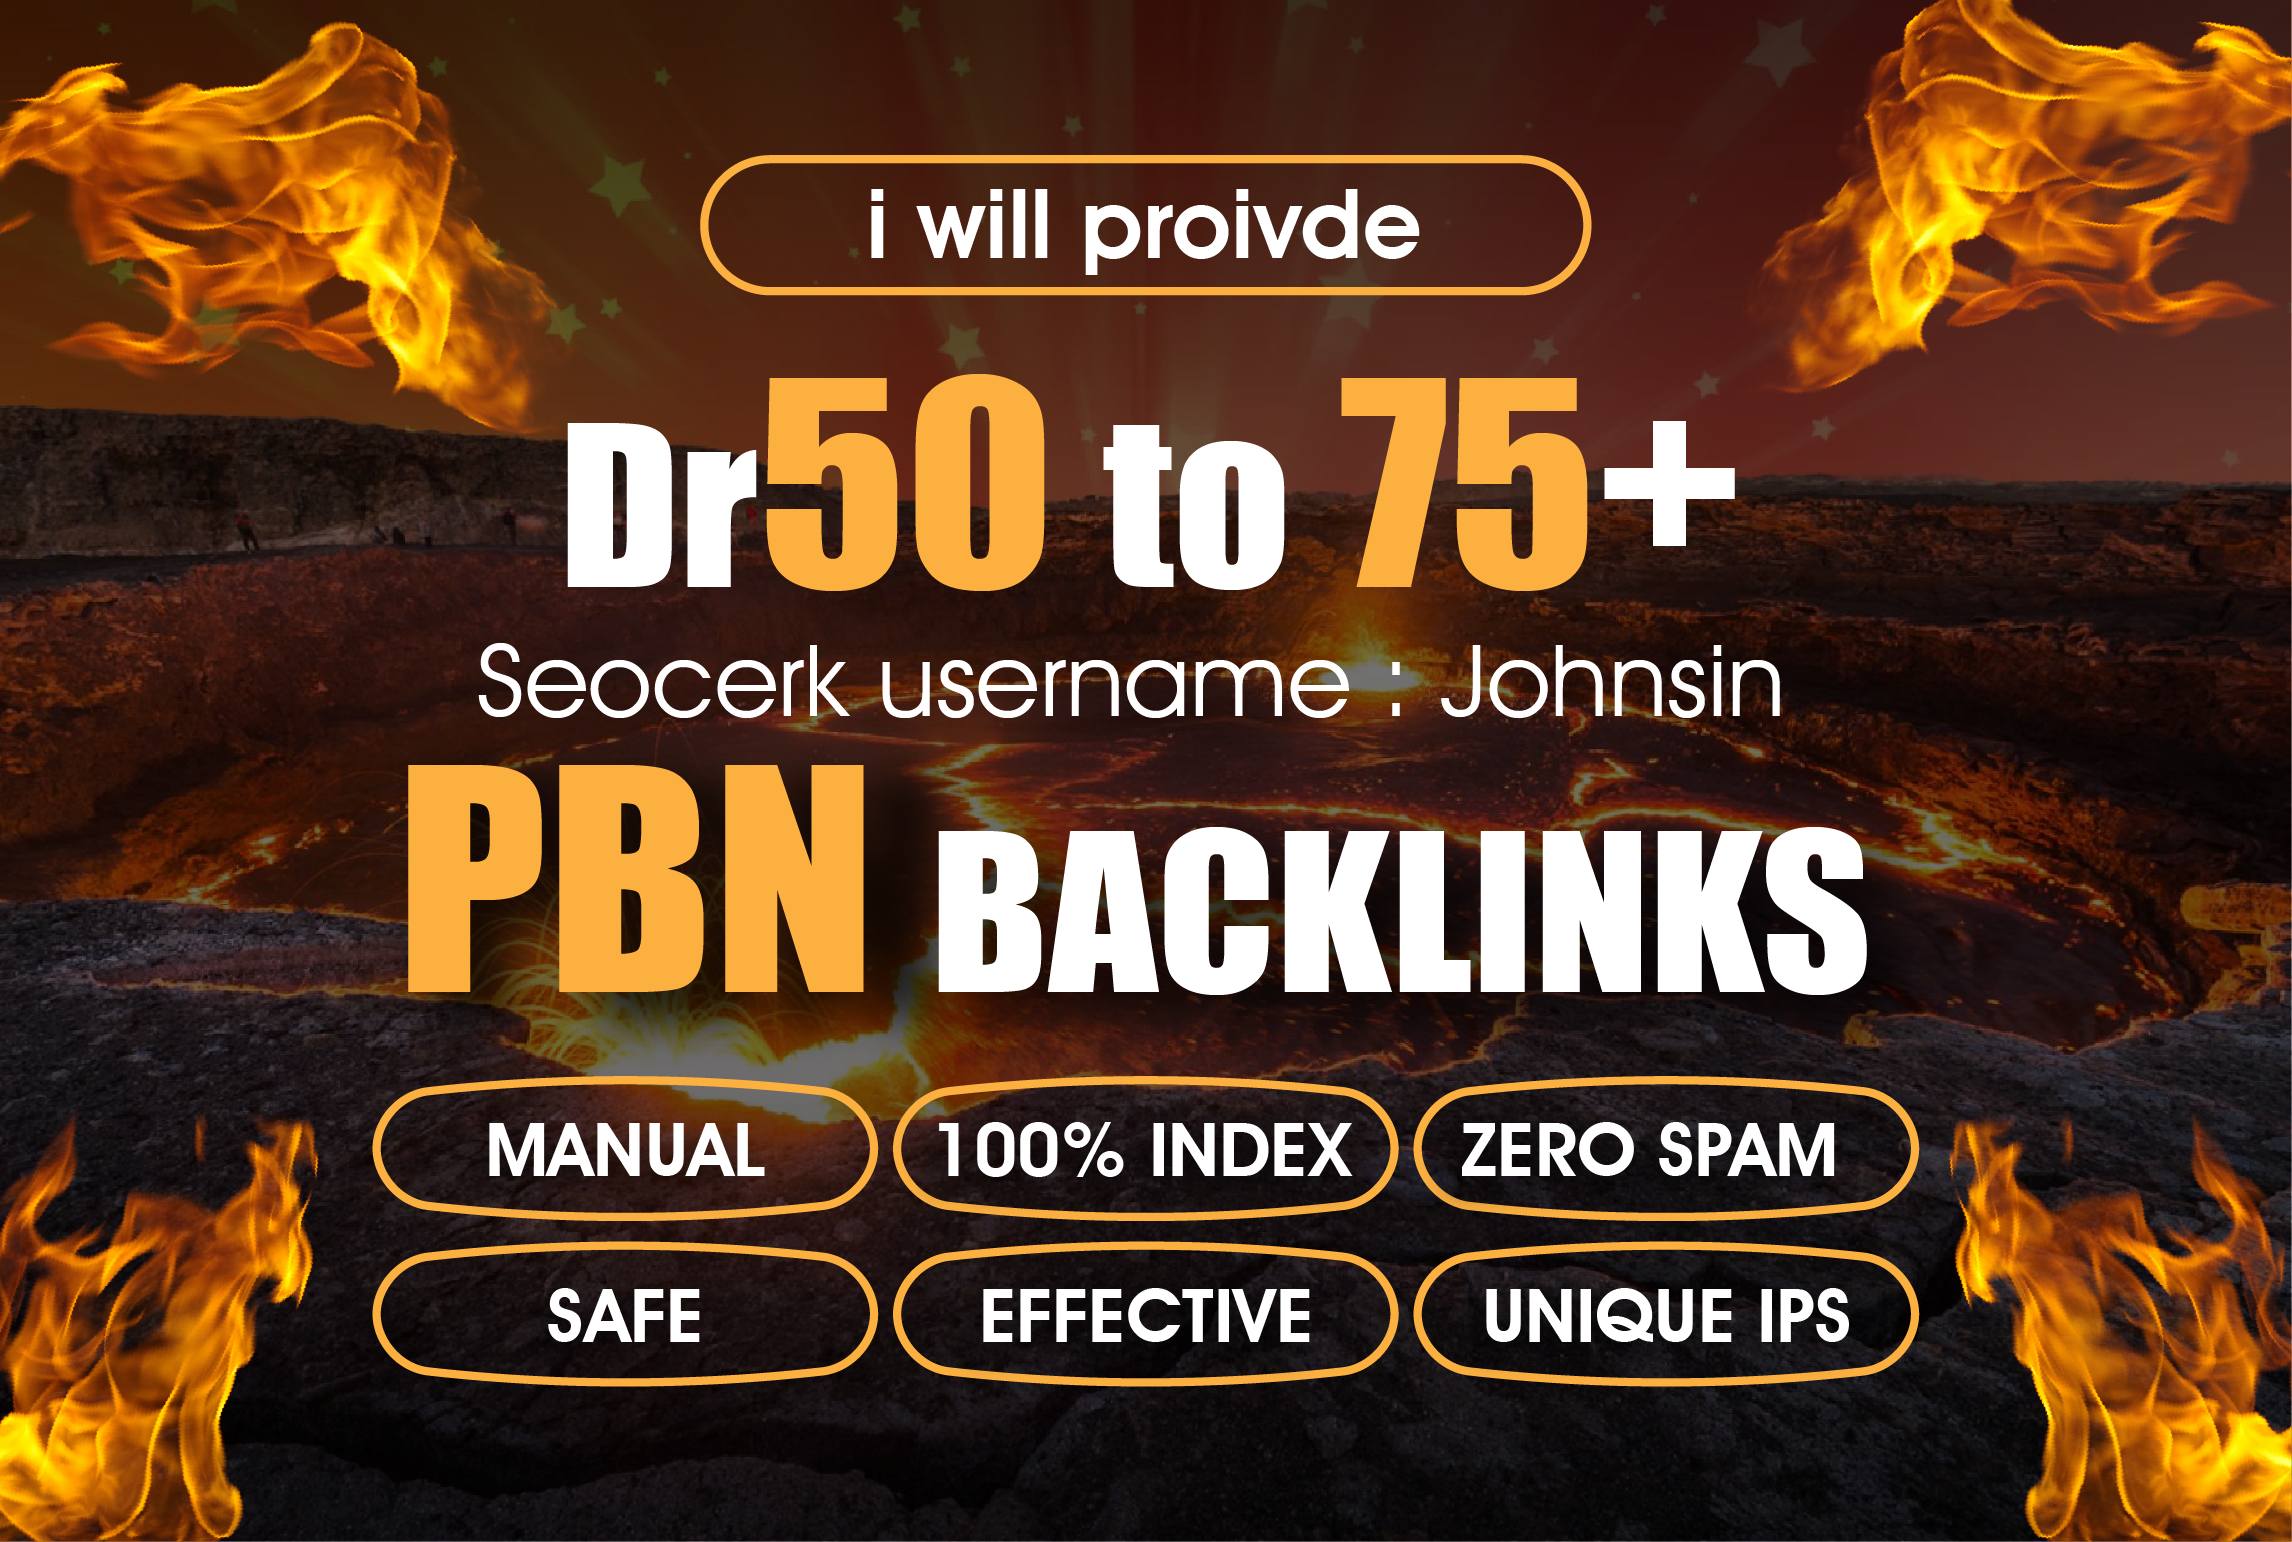 I will proivde 20 Manual High Dr 50 to 75 Plus Homepage PBN Dofollow Backlinks